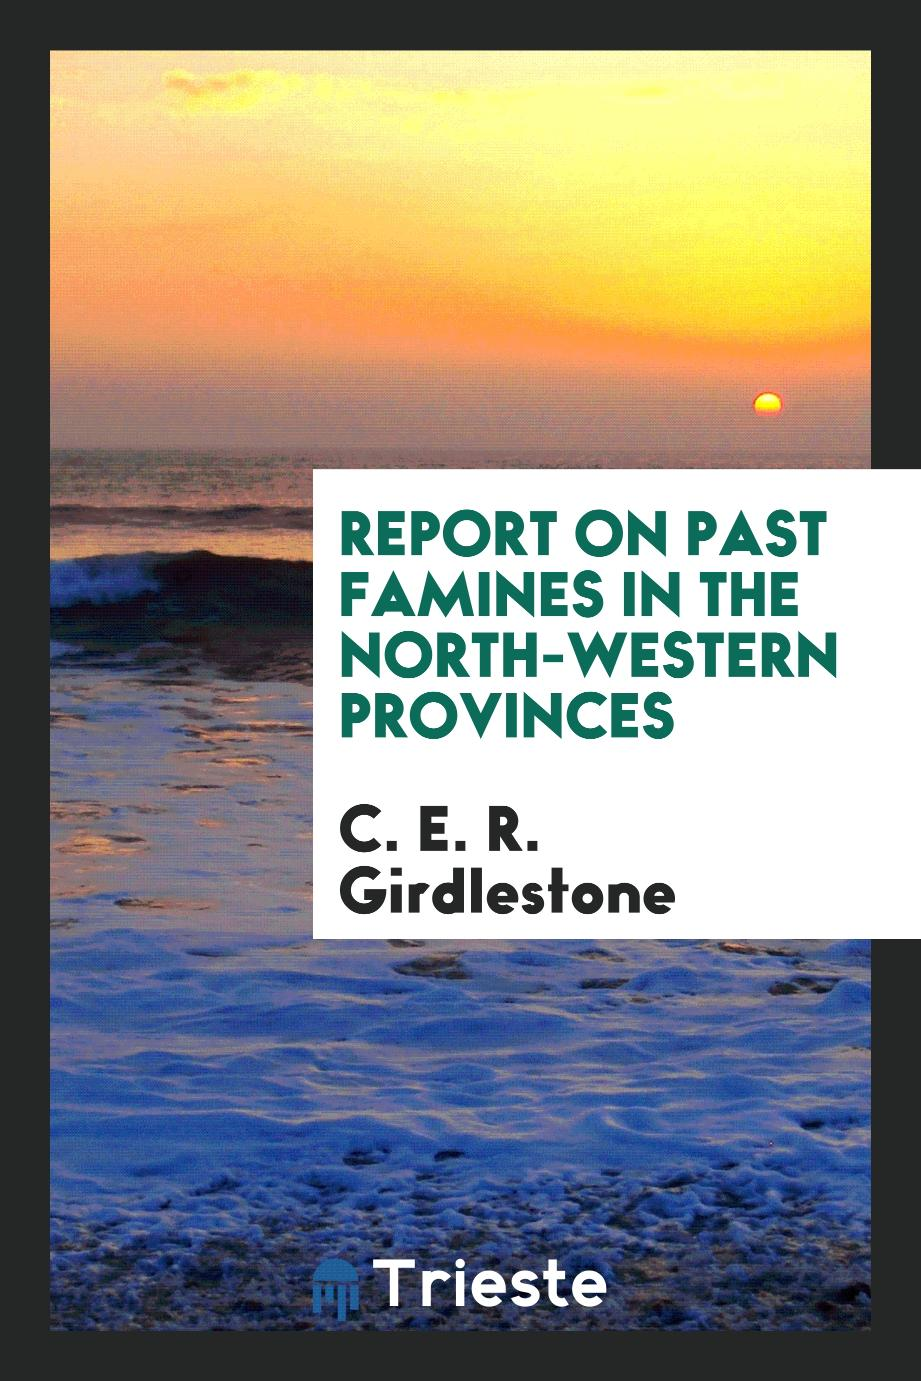 Report on Past Famines in the North-Western Provinces